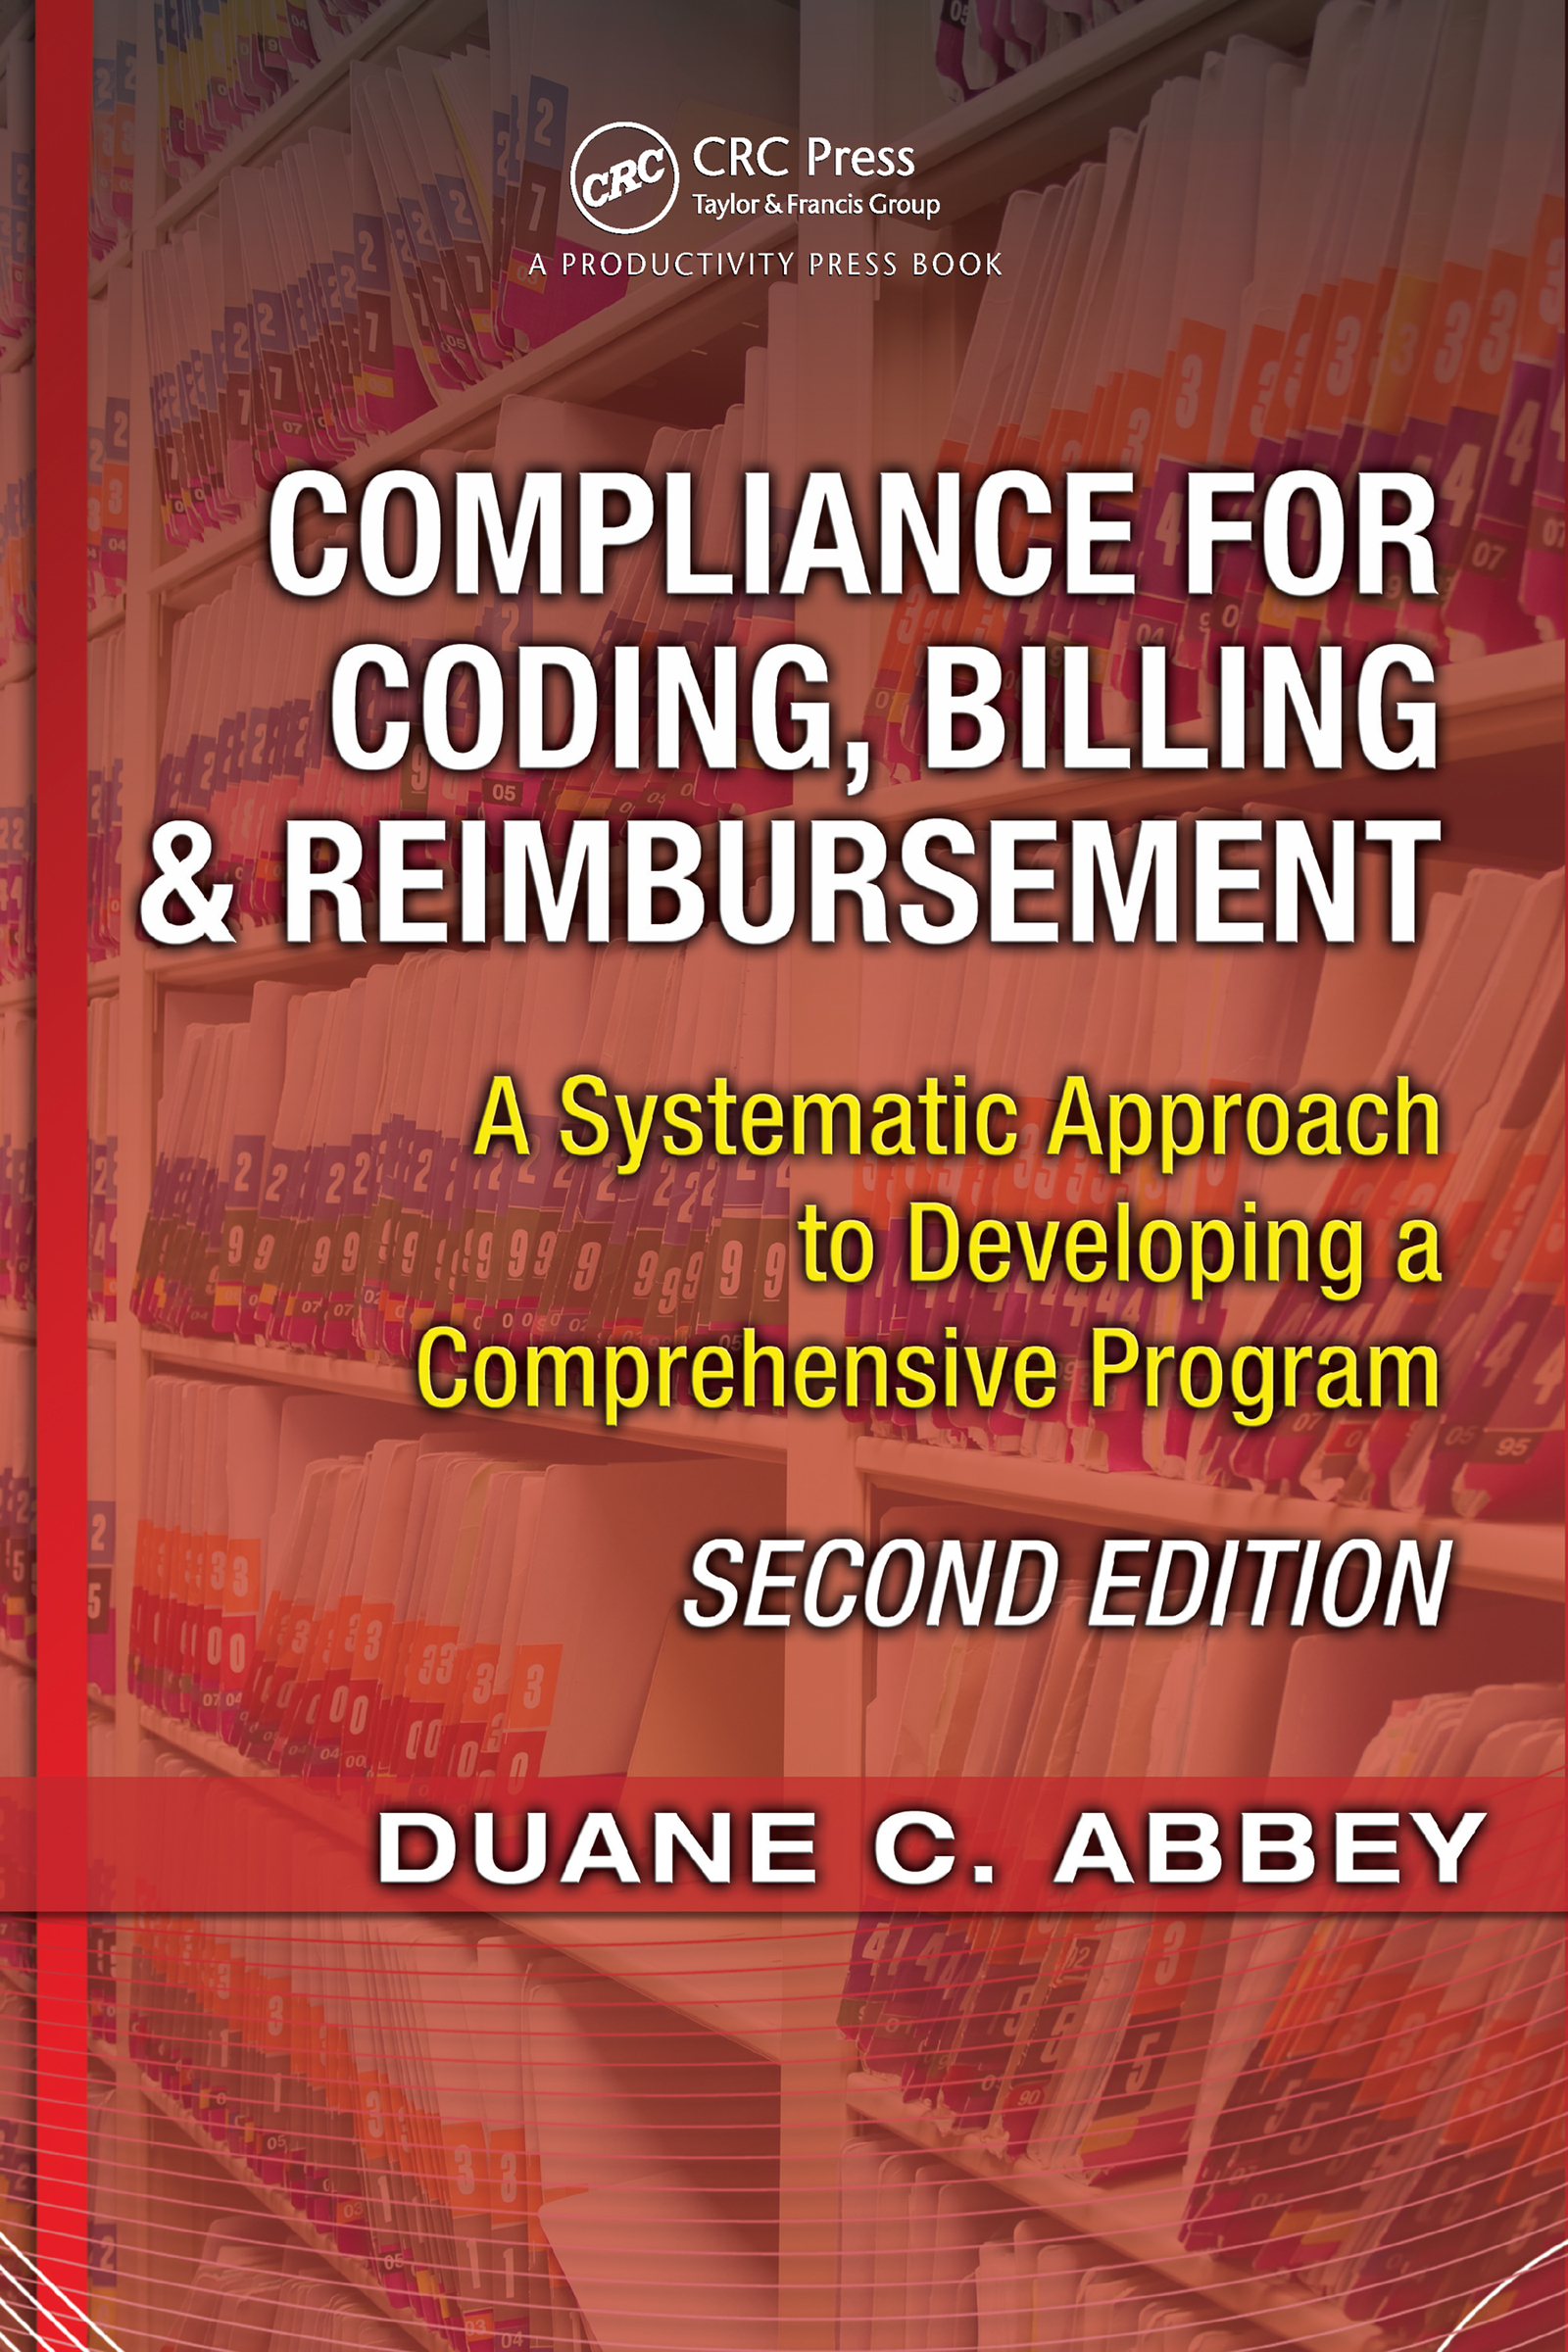 Download Ebook Compliance for Coding, Billing & Reimbursement (2nd ed.) by Duane C. Abbey Pdf